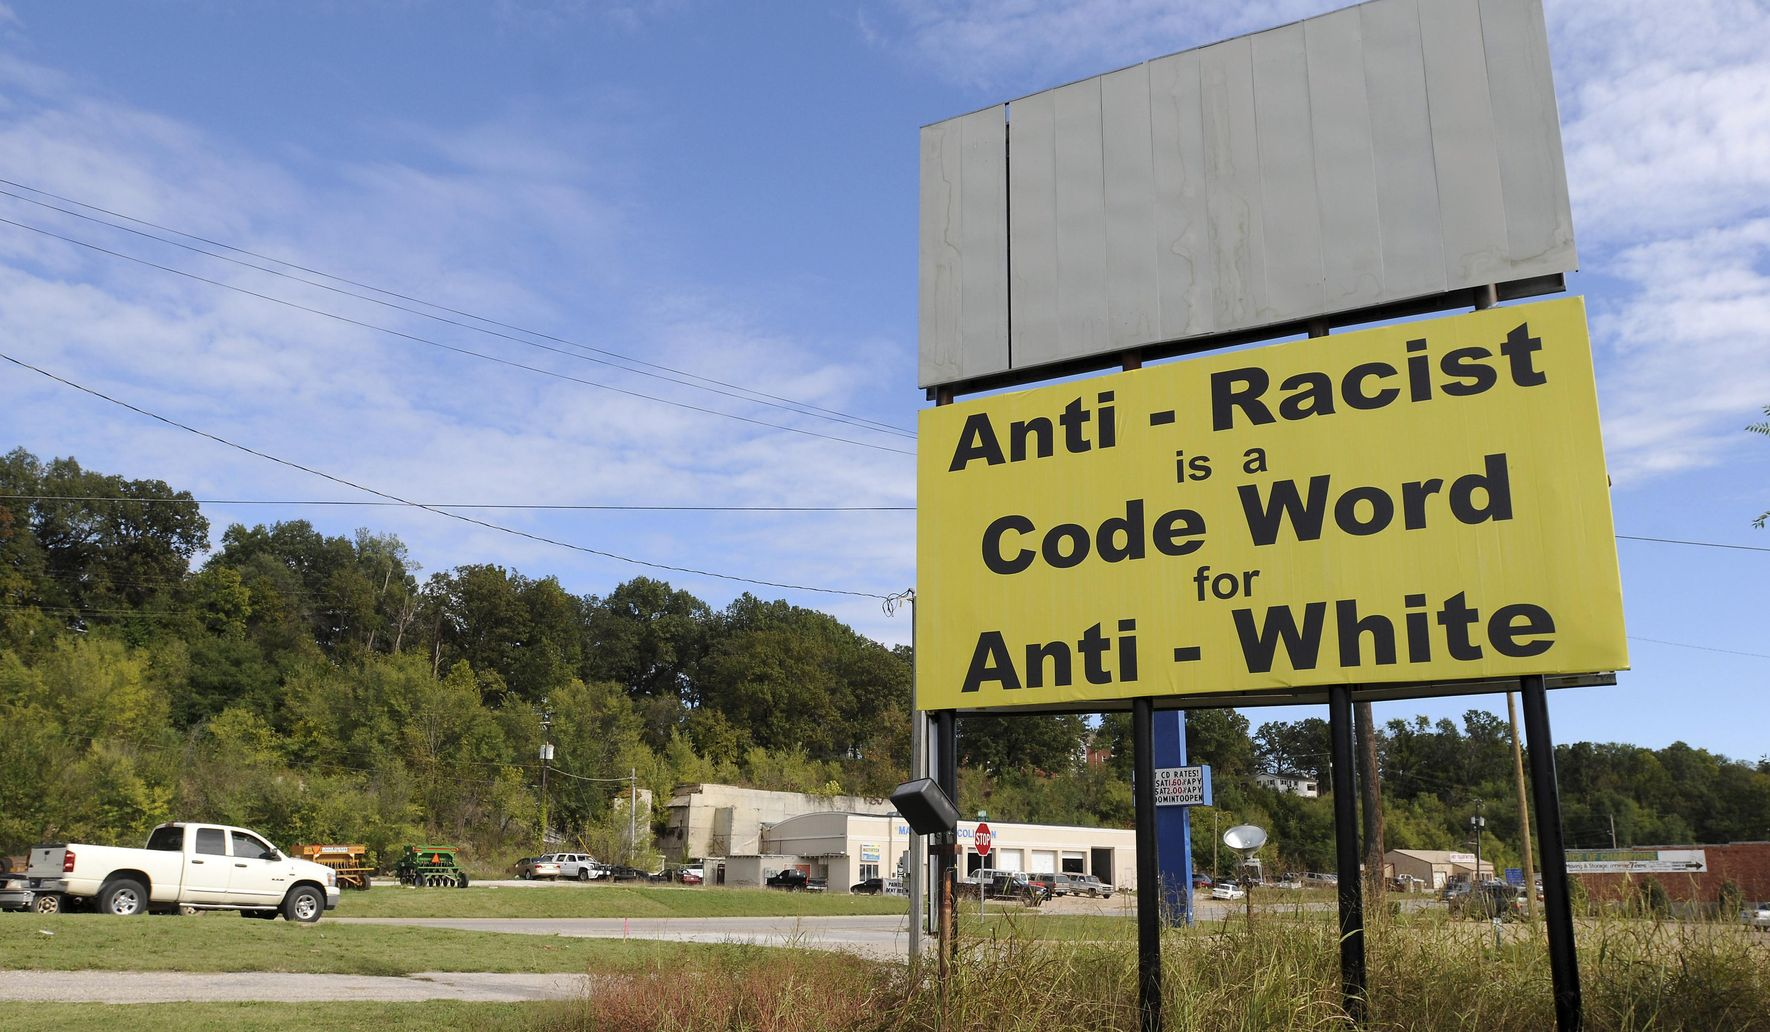 Arkansas, home to supremacist groups, weighs hate crimes law